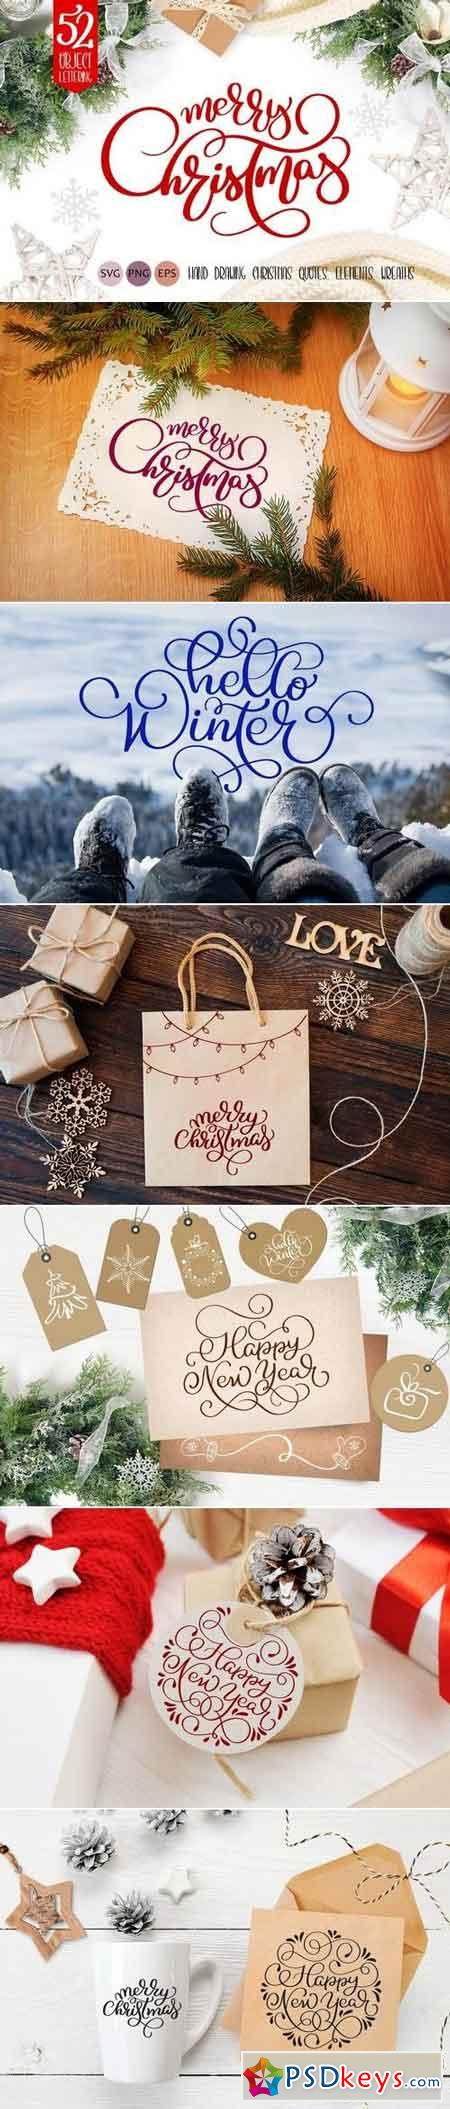 Merry Christmas Quotes and Objects Calligraphy